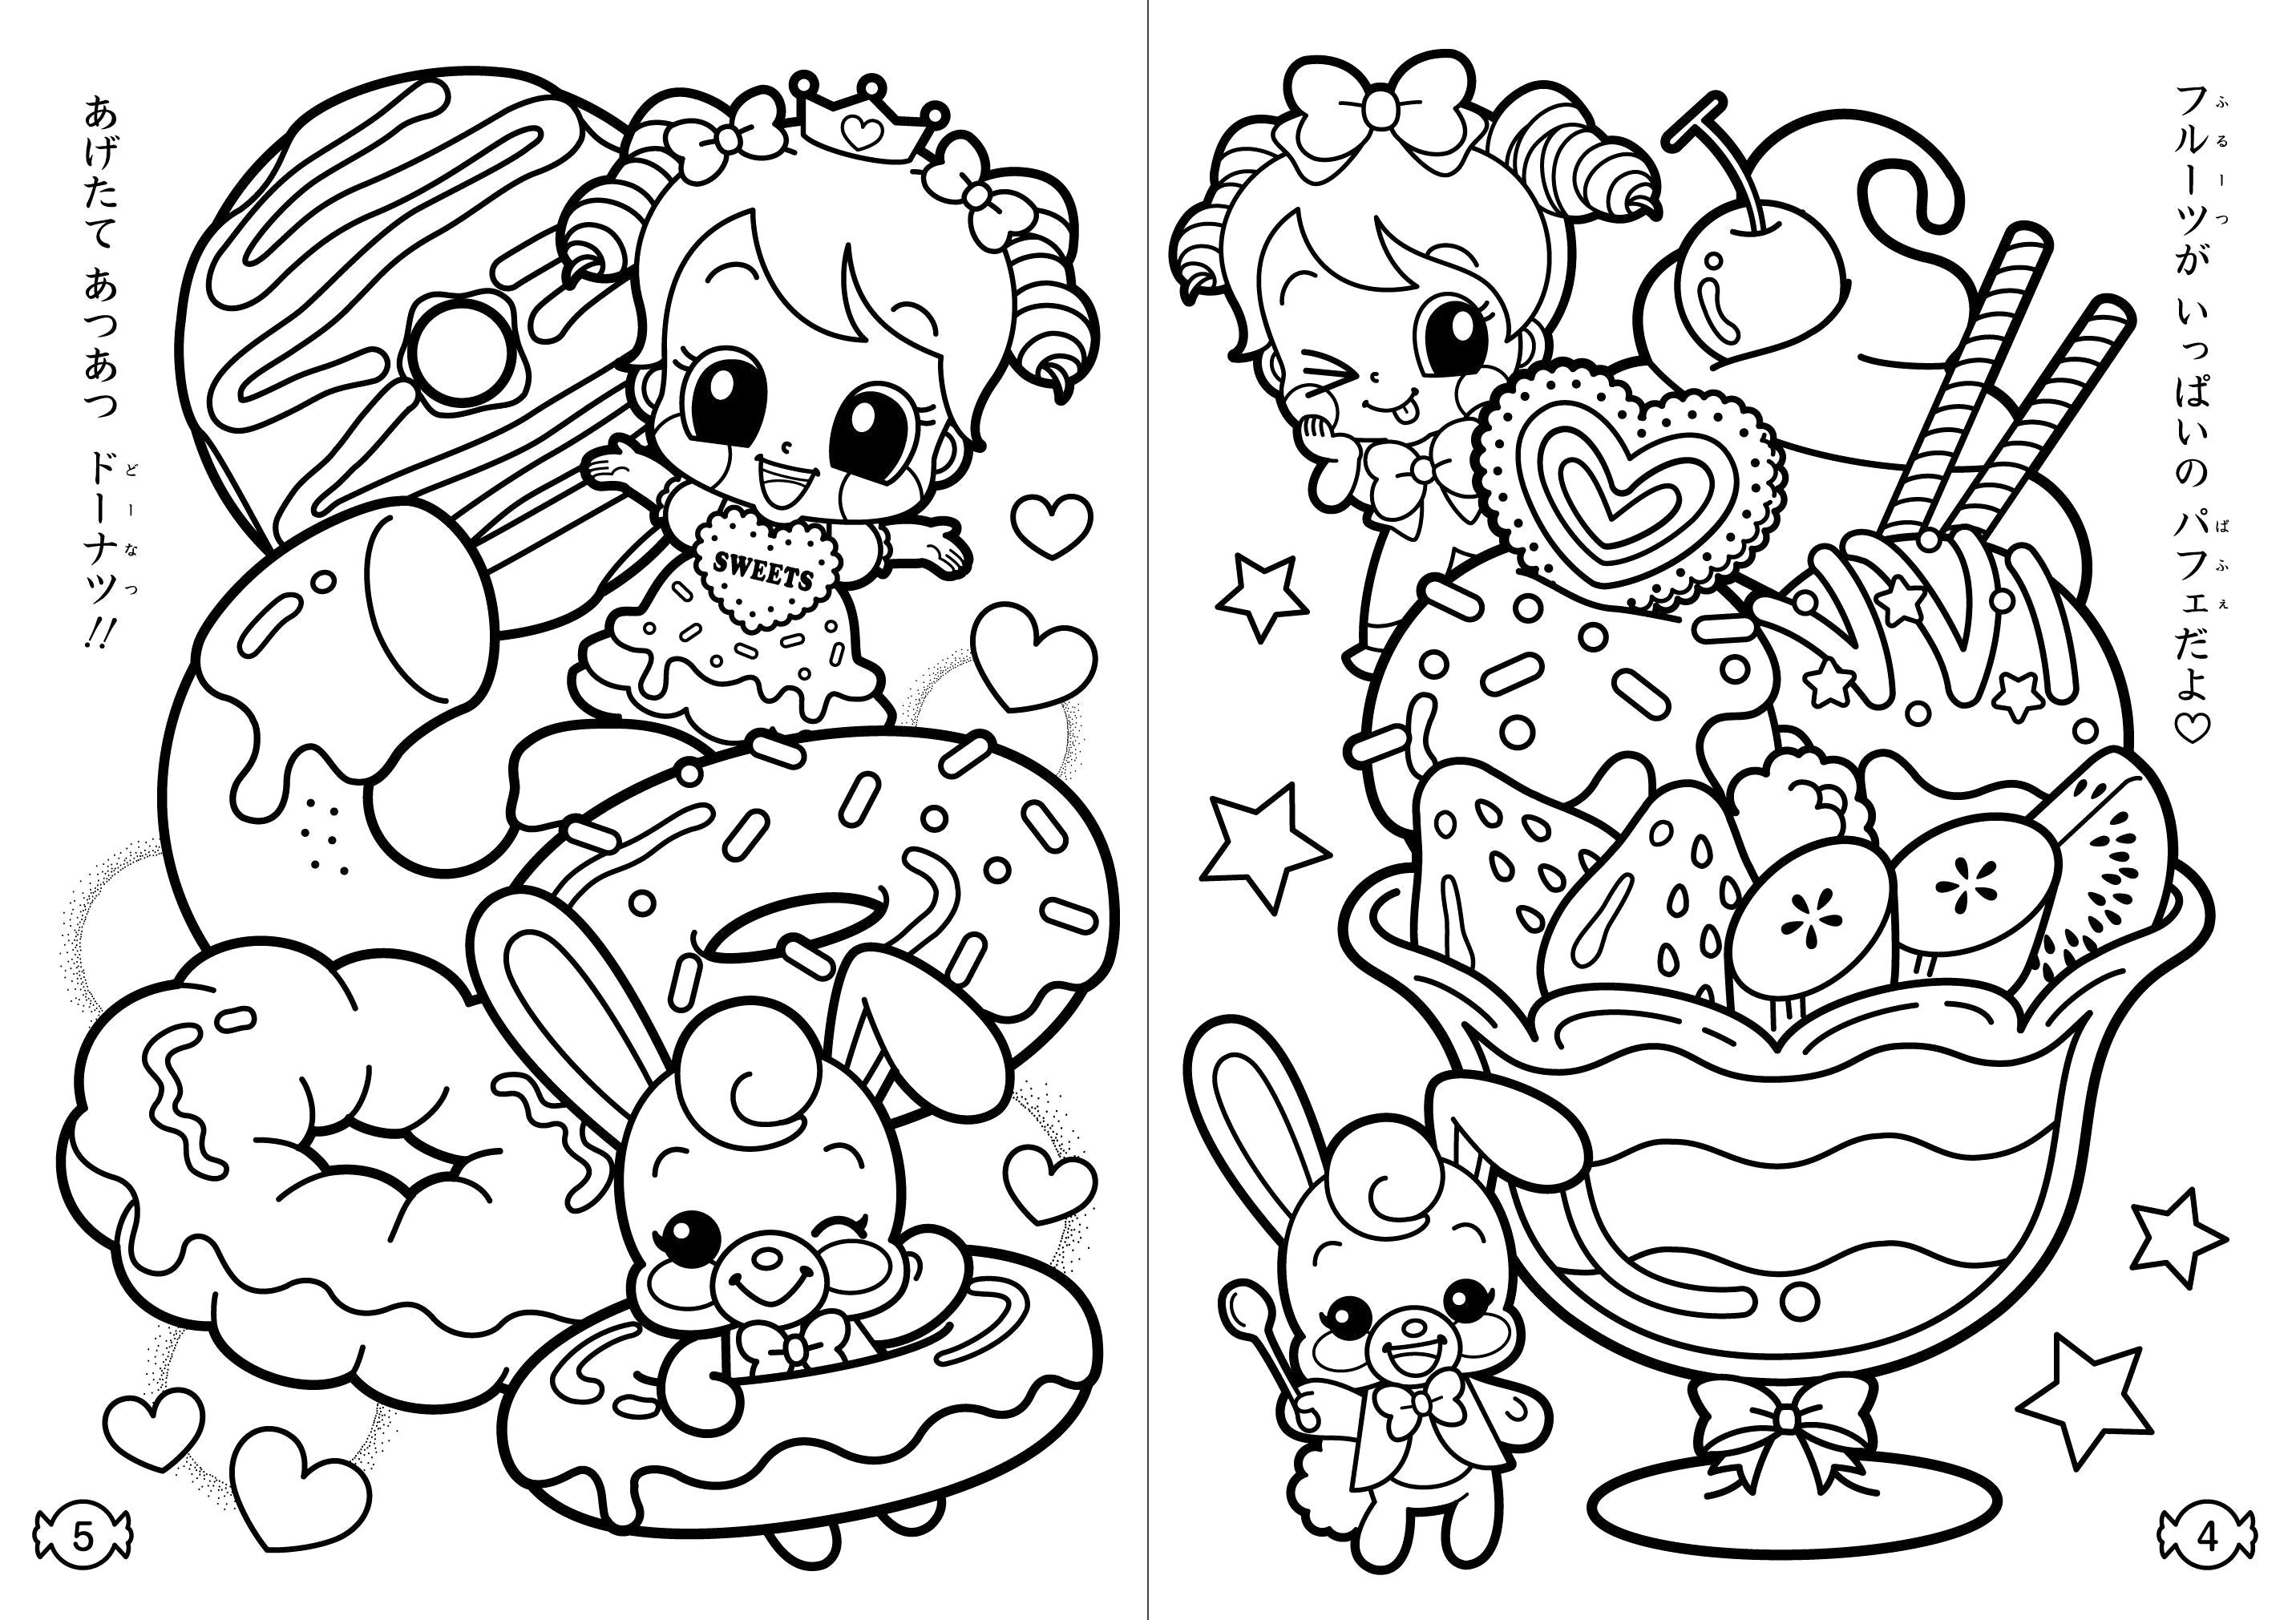 Food to coloring pages ~ Coloring Pages Cute Food Fresh Kawaii Mr Dong 7619d8a2e3 ...